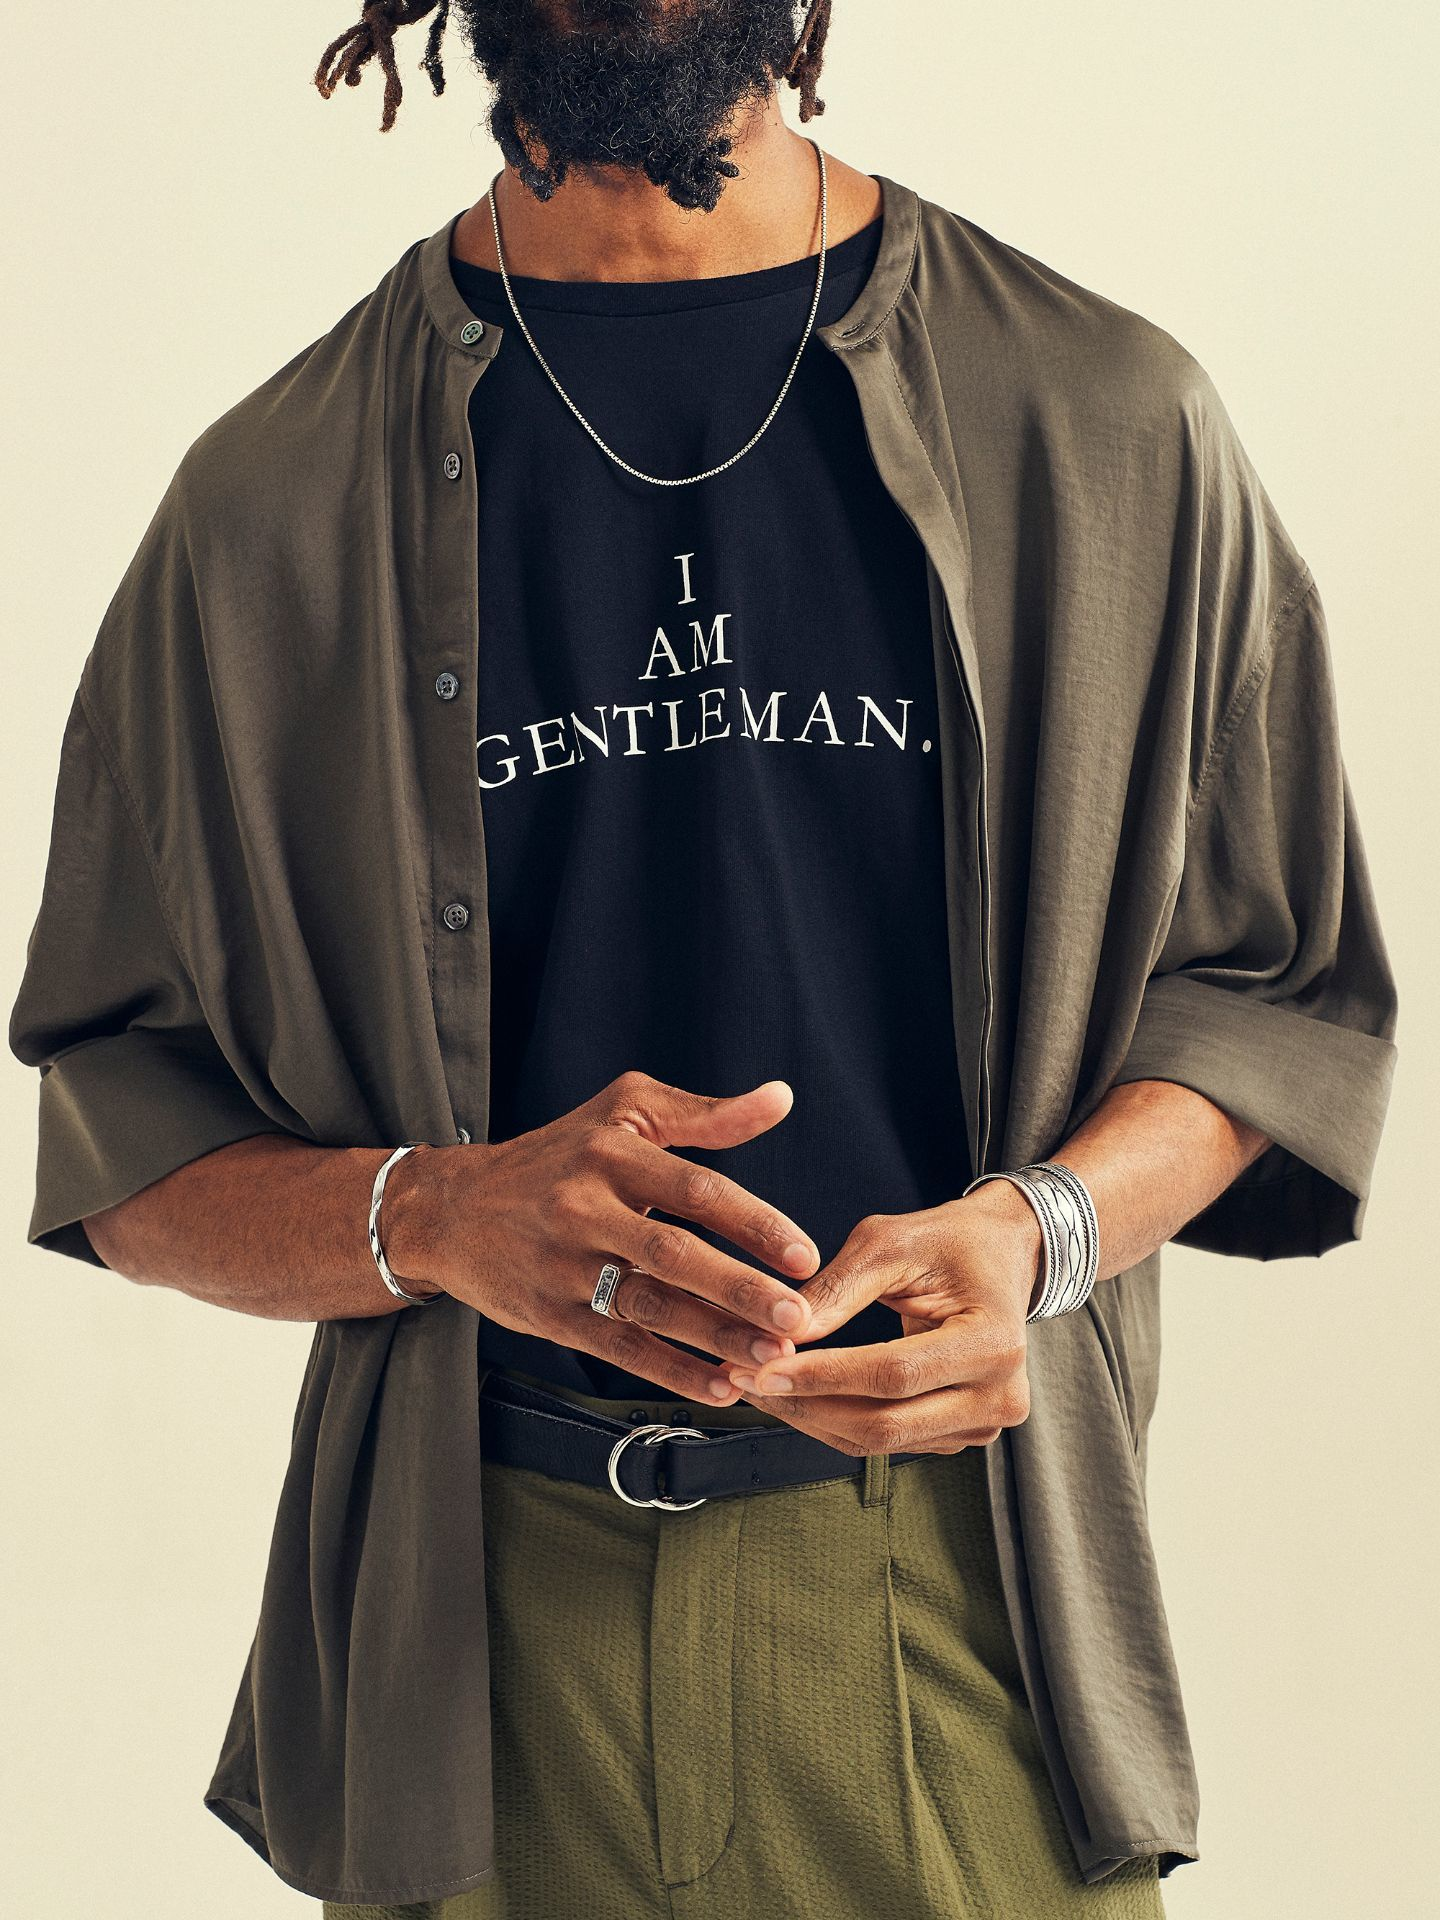 gentleman 2019 summer lookbook 1 11